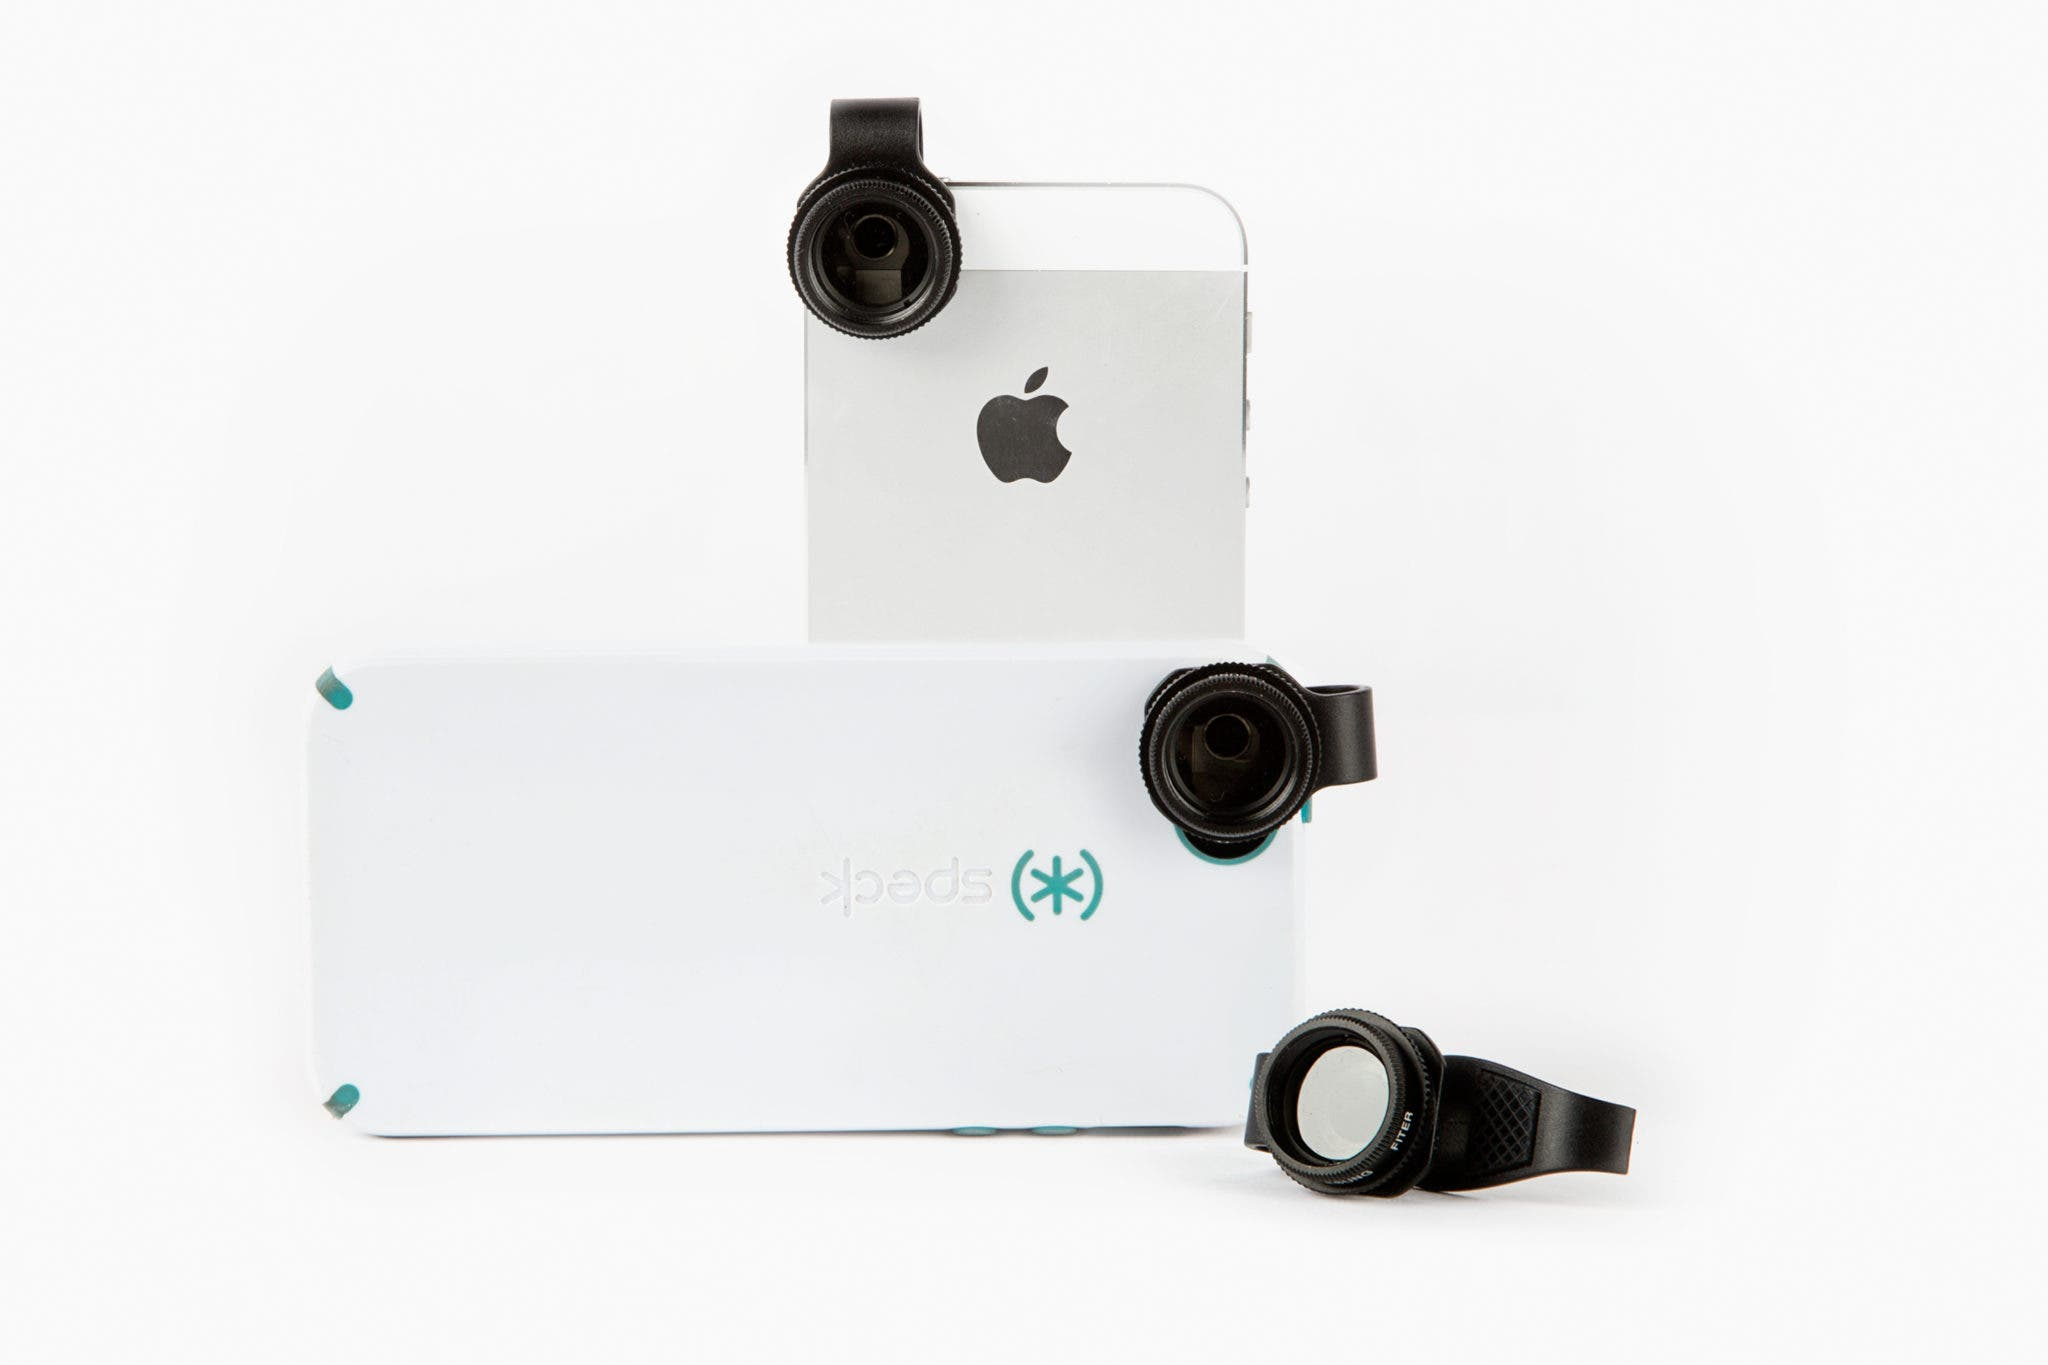 Photojojo Releases a Clip-on Polarizer for Our Smartphones